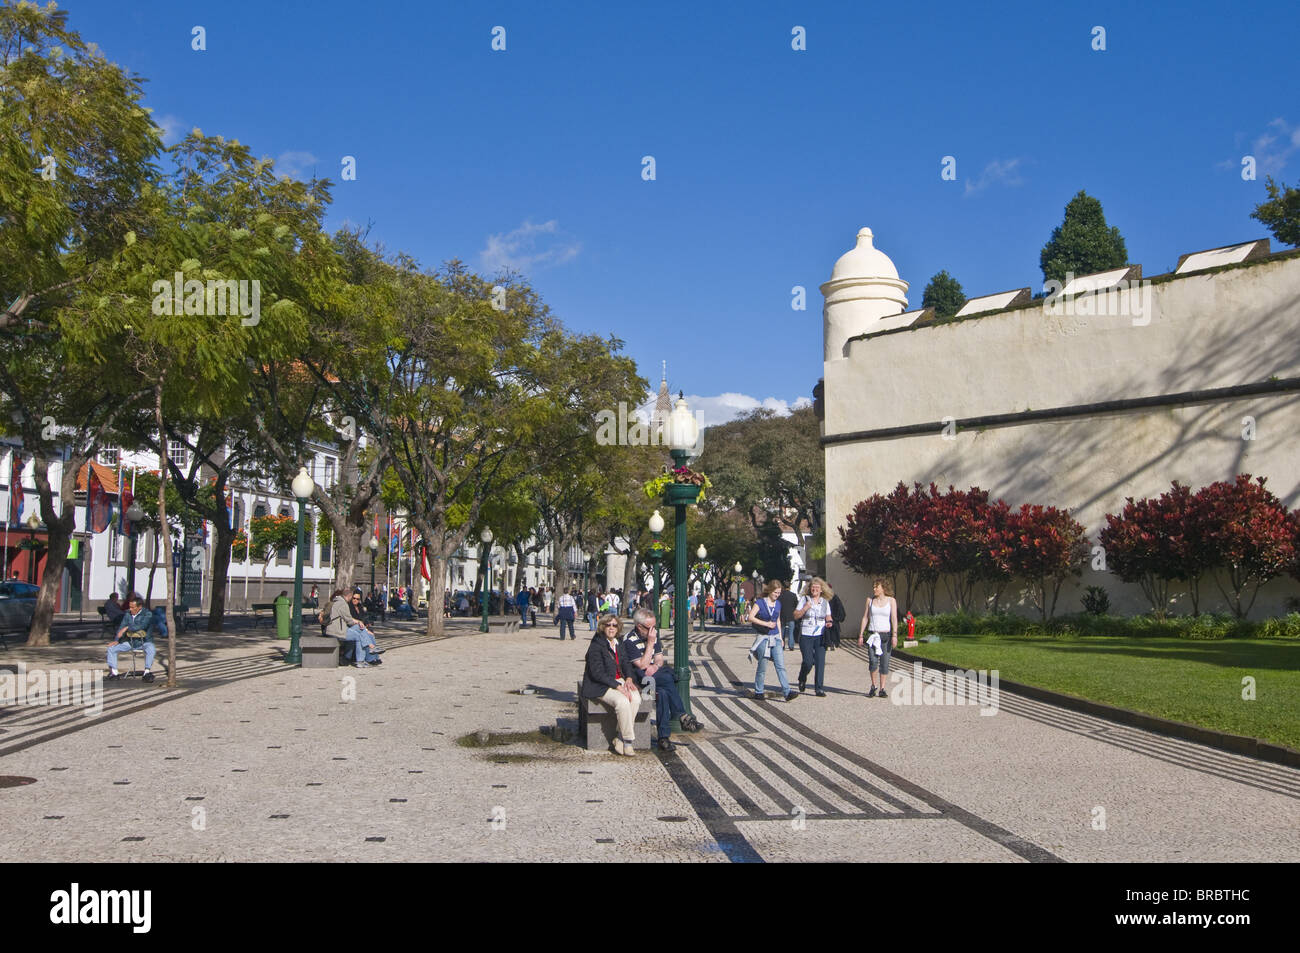 Pedestrian zone, Funchal, Madeira, Portugal - Stock Image